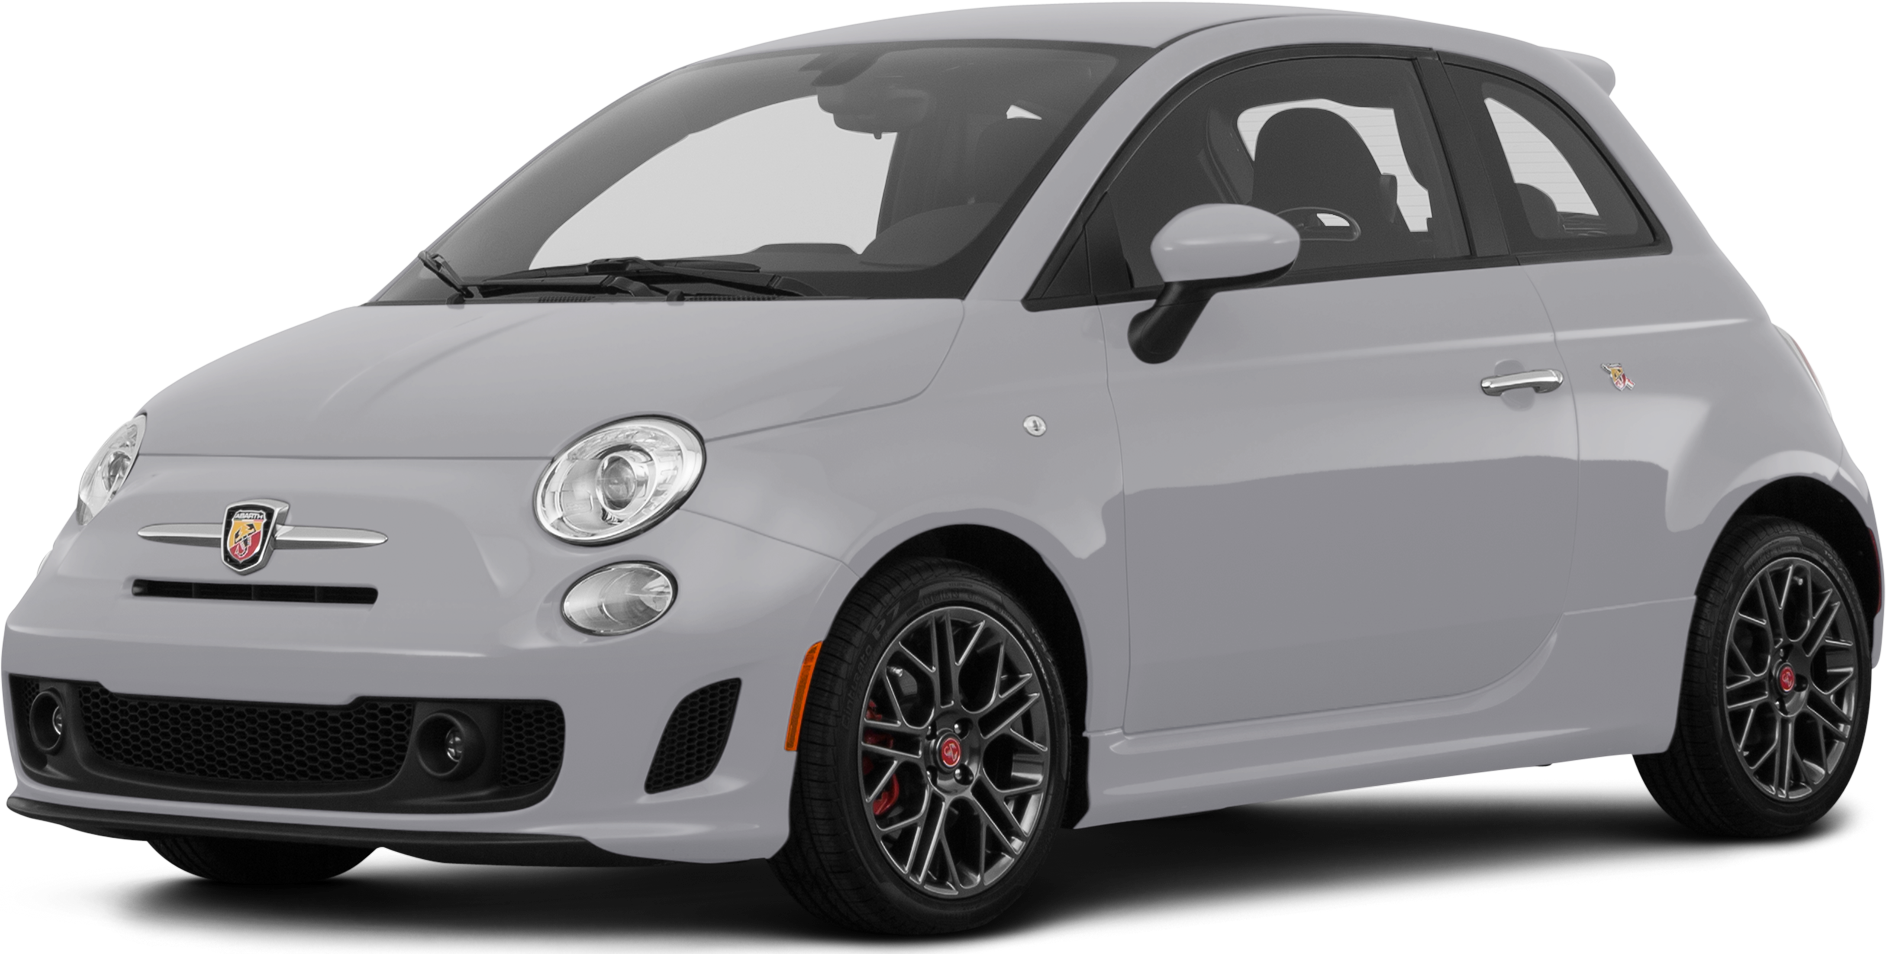 2017 Fiat 500 Abarth Values Cars For Sale Kelley Blue Book